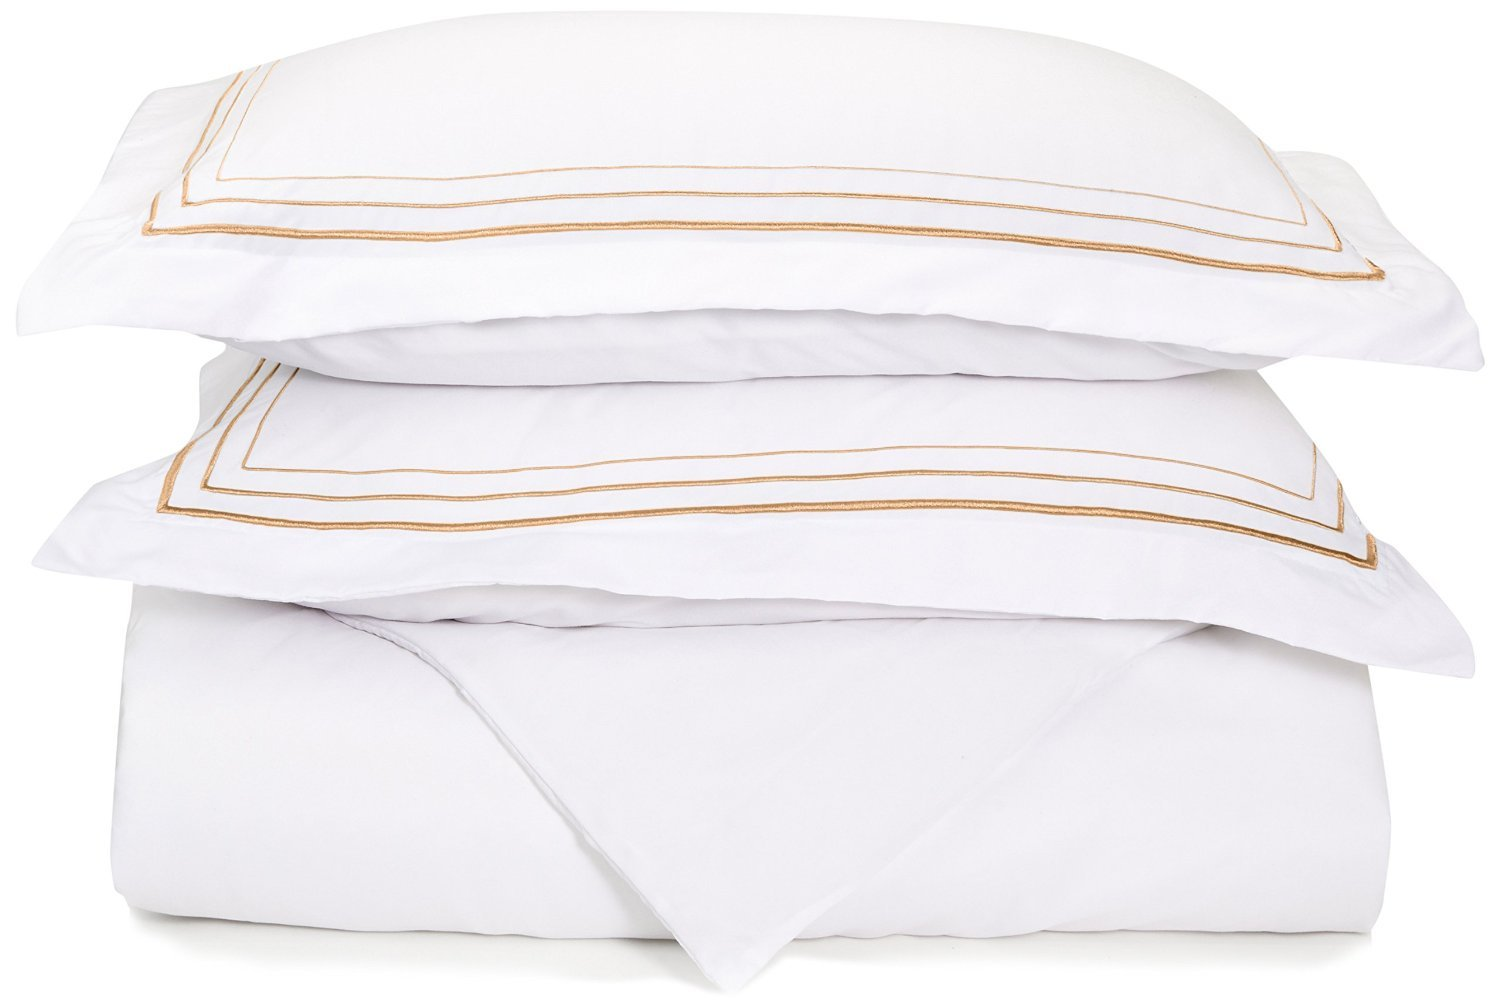 Super Soft Light Weight, 100% Brushed Microfiber, King/California King, Wrinkle Resistant, White Duvet Cover with Gold 3-Line Embroidered Pillowshams in Gift Box